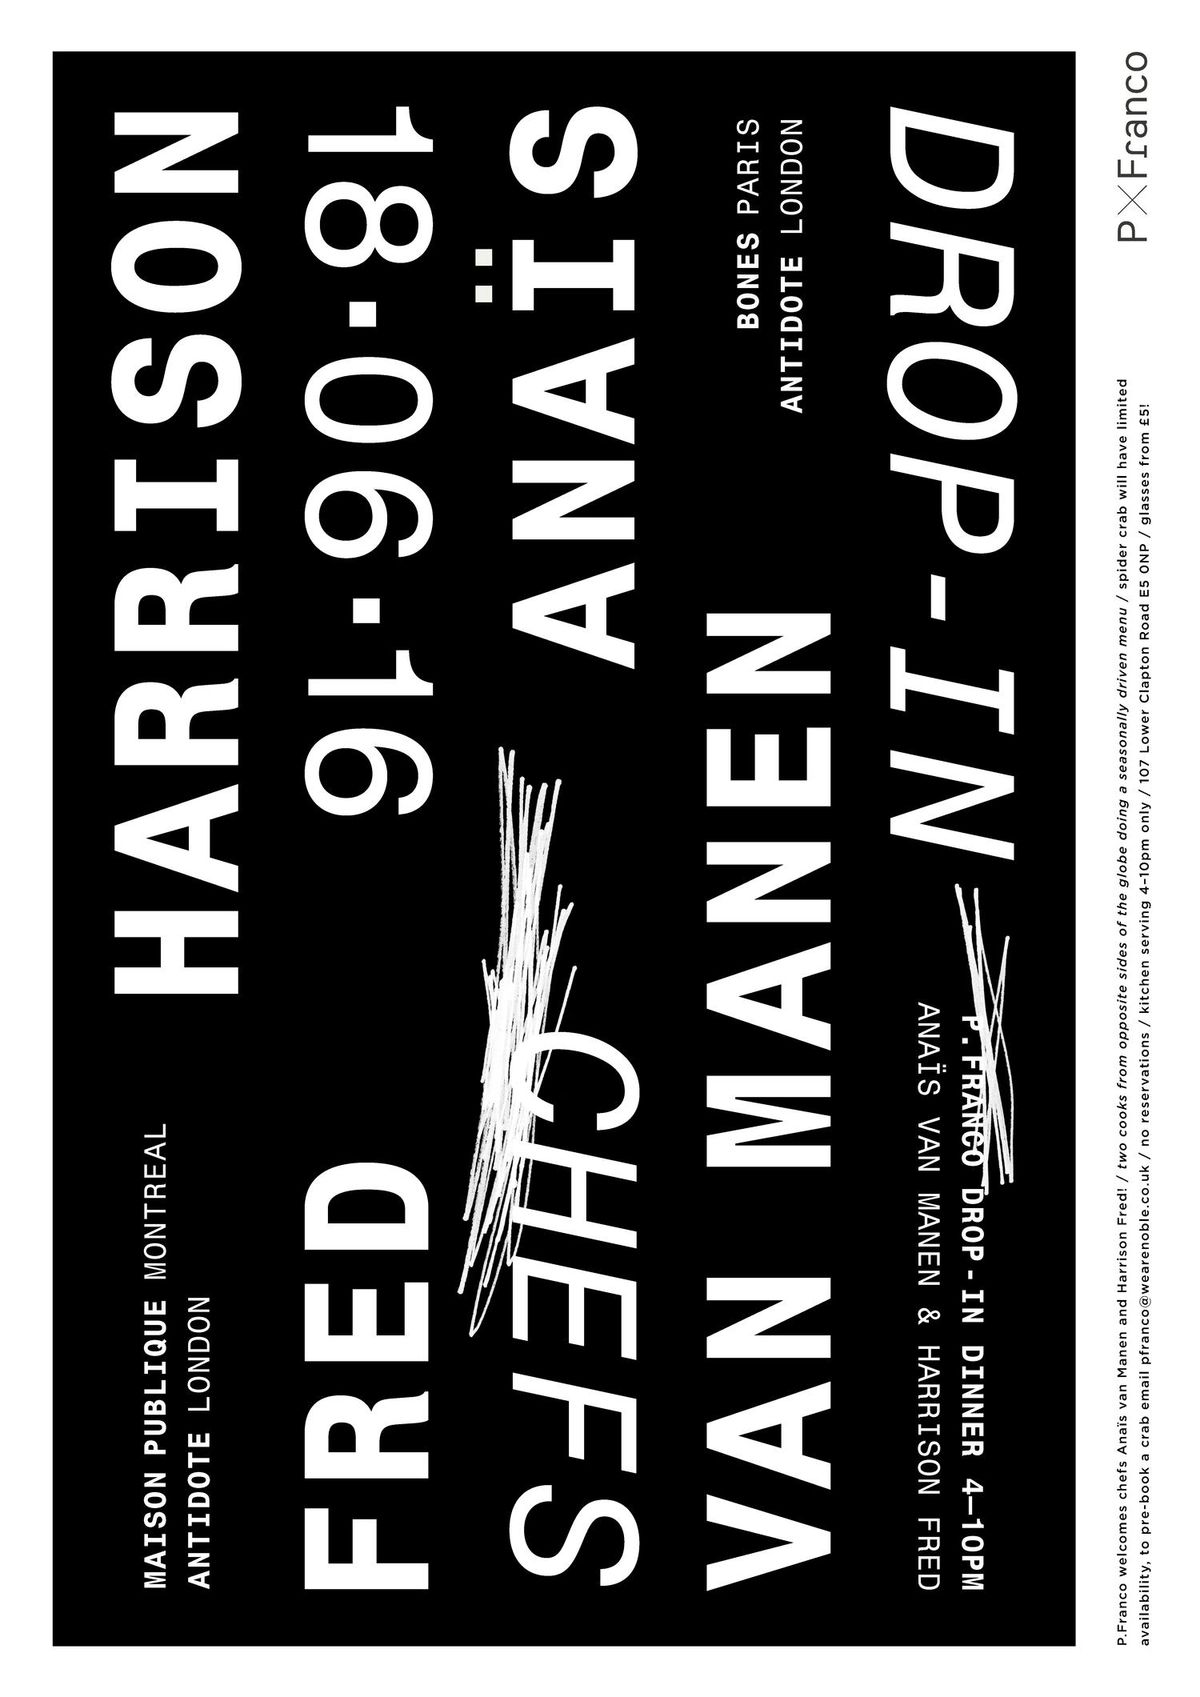 The best London restaurant merch to buy right now includes posters from P. Franco wine bar designed by Tegan Ella Hendel, including this black design with white text announcing a wine event with Australian winemaker Fred Harrison